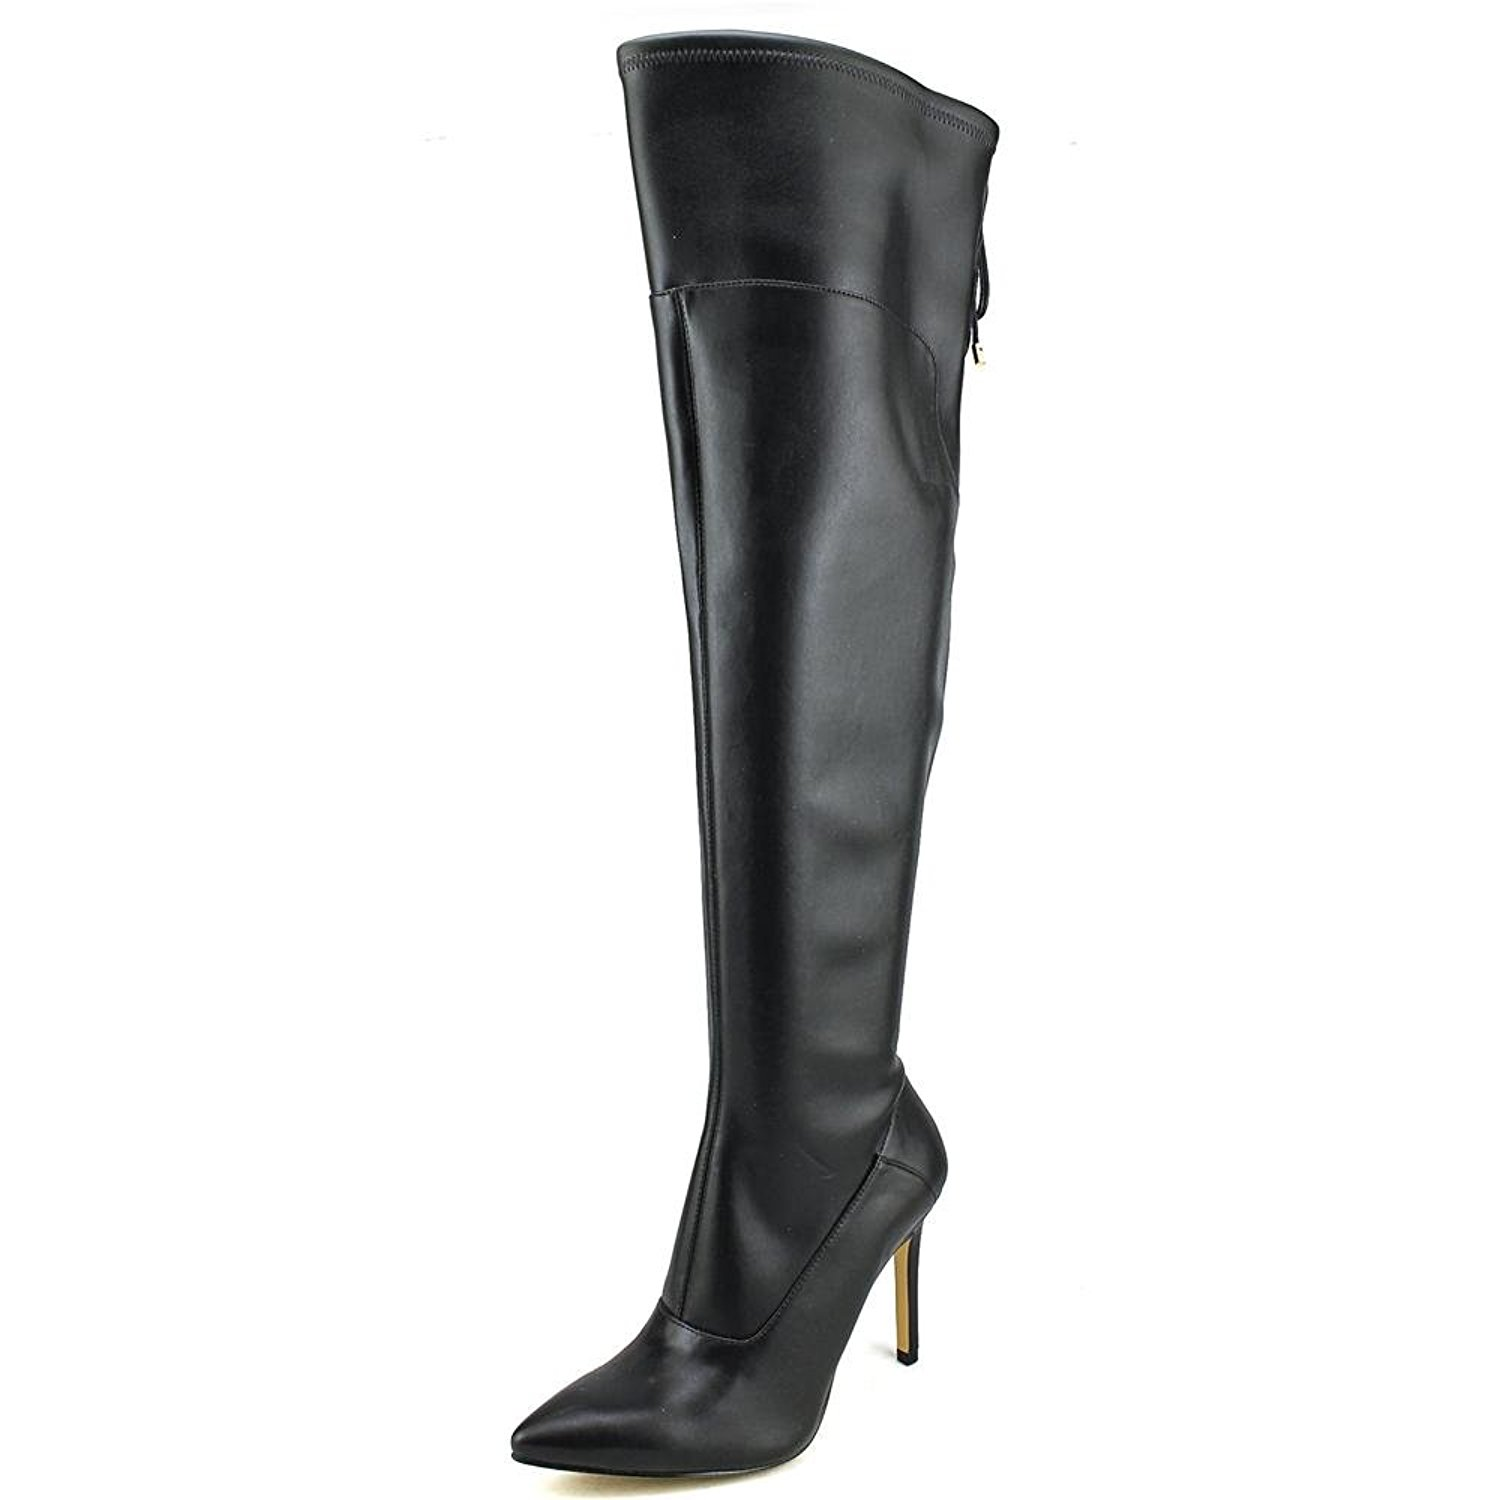 Guess Women's Valerine Pointed Toe Synthetic Over the Knee Boot Black Size 8.5